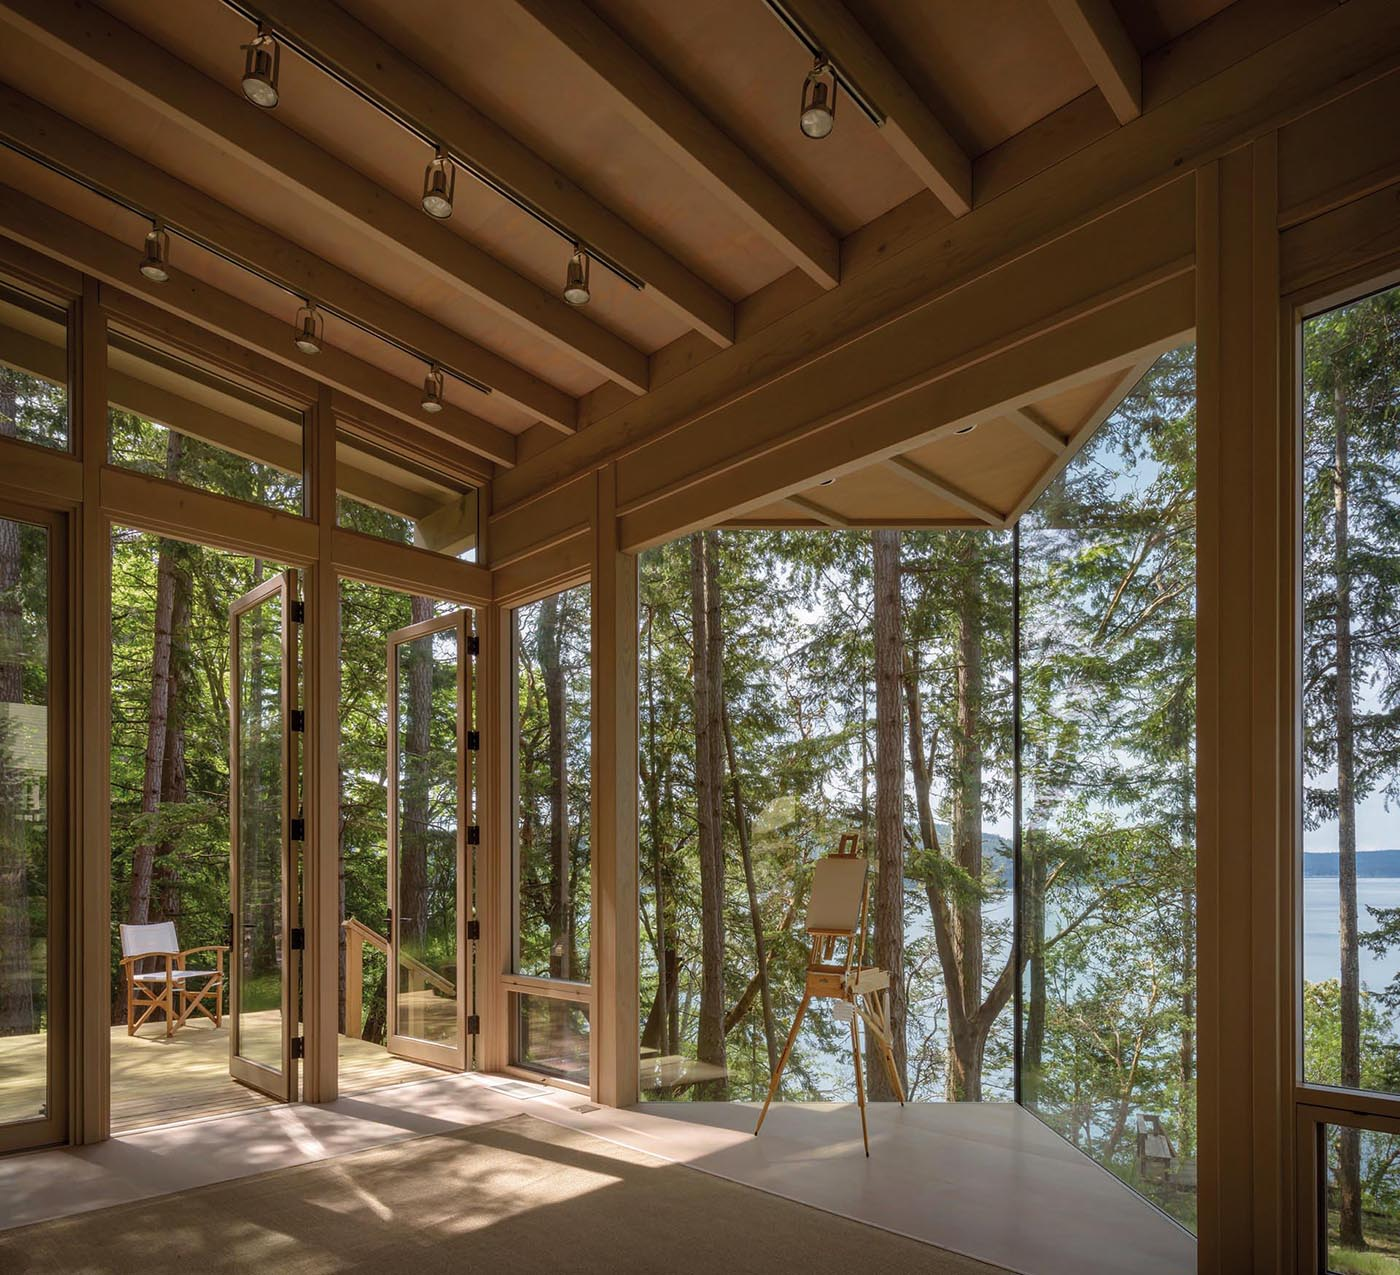 A small wood cabin that's designed as an artist cabin or guest house, and has glass walls.